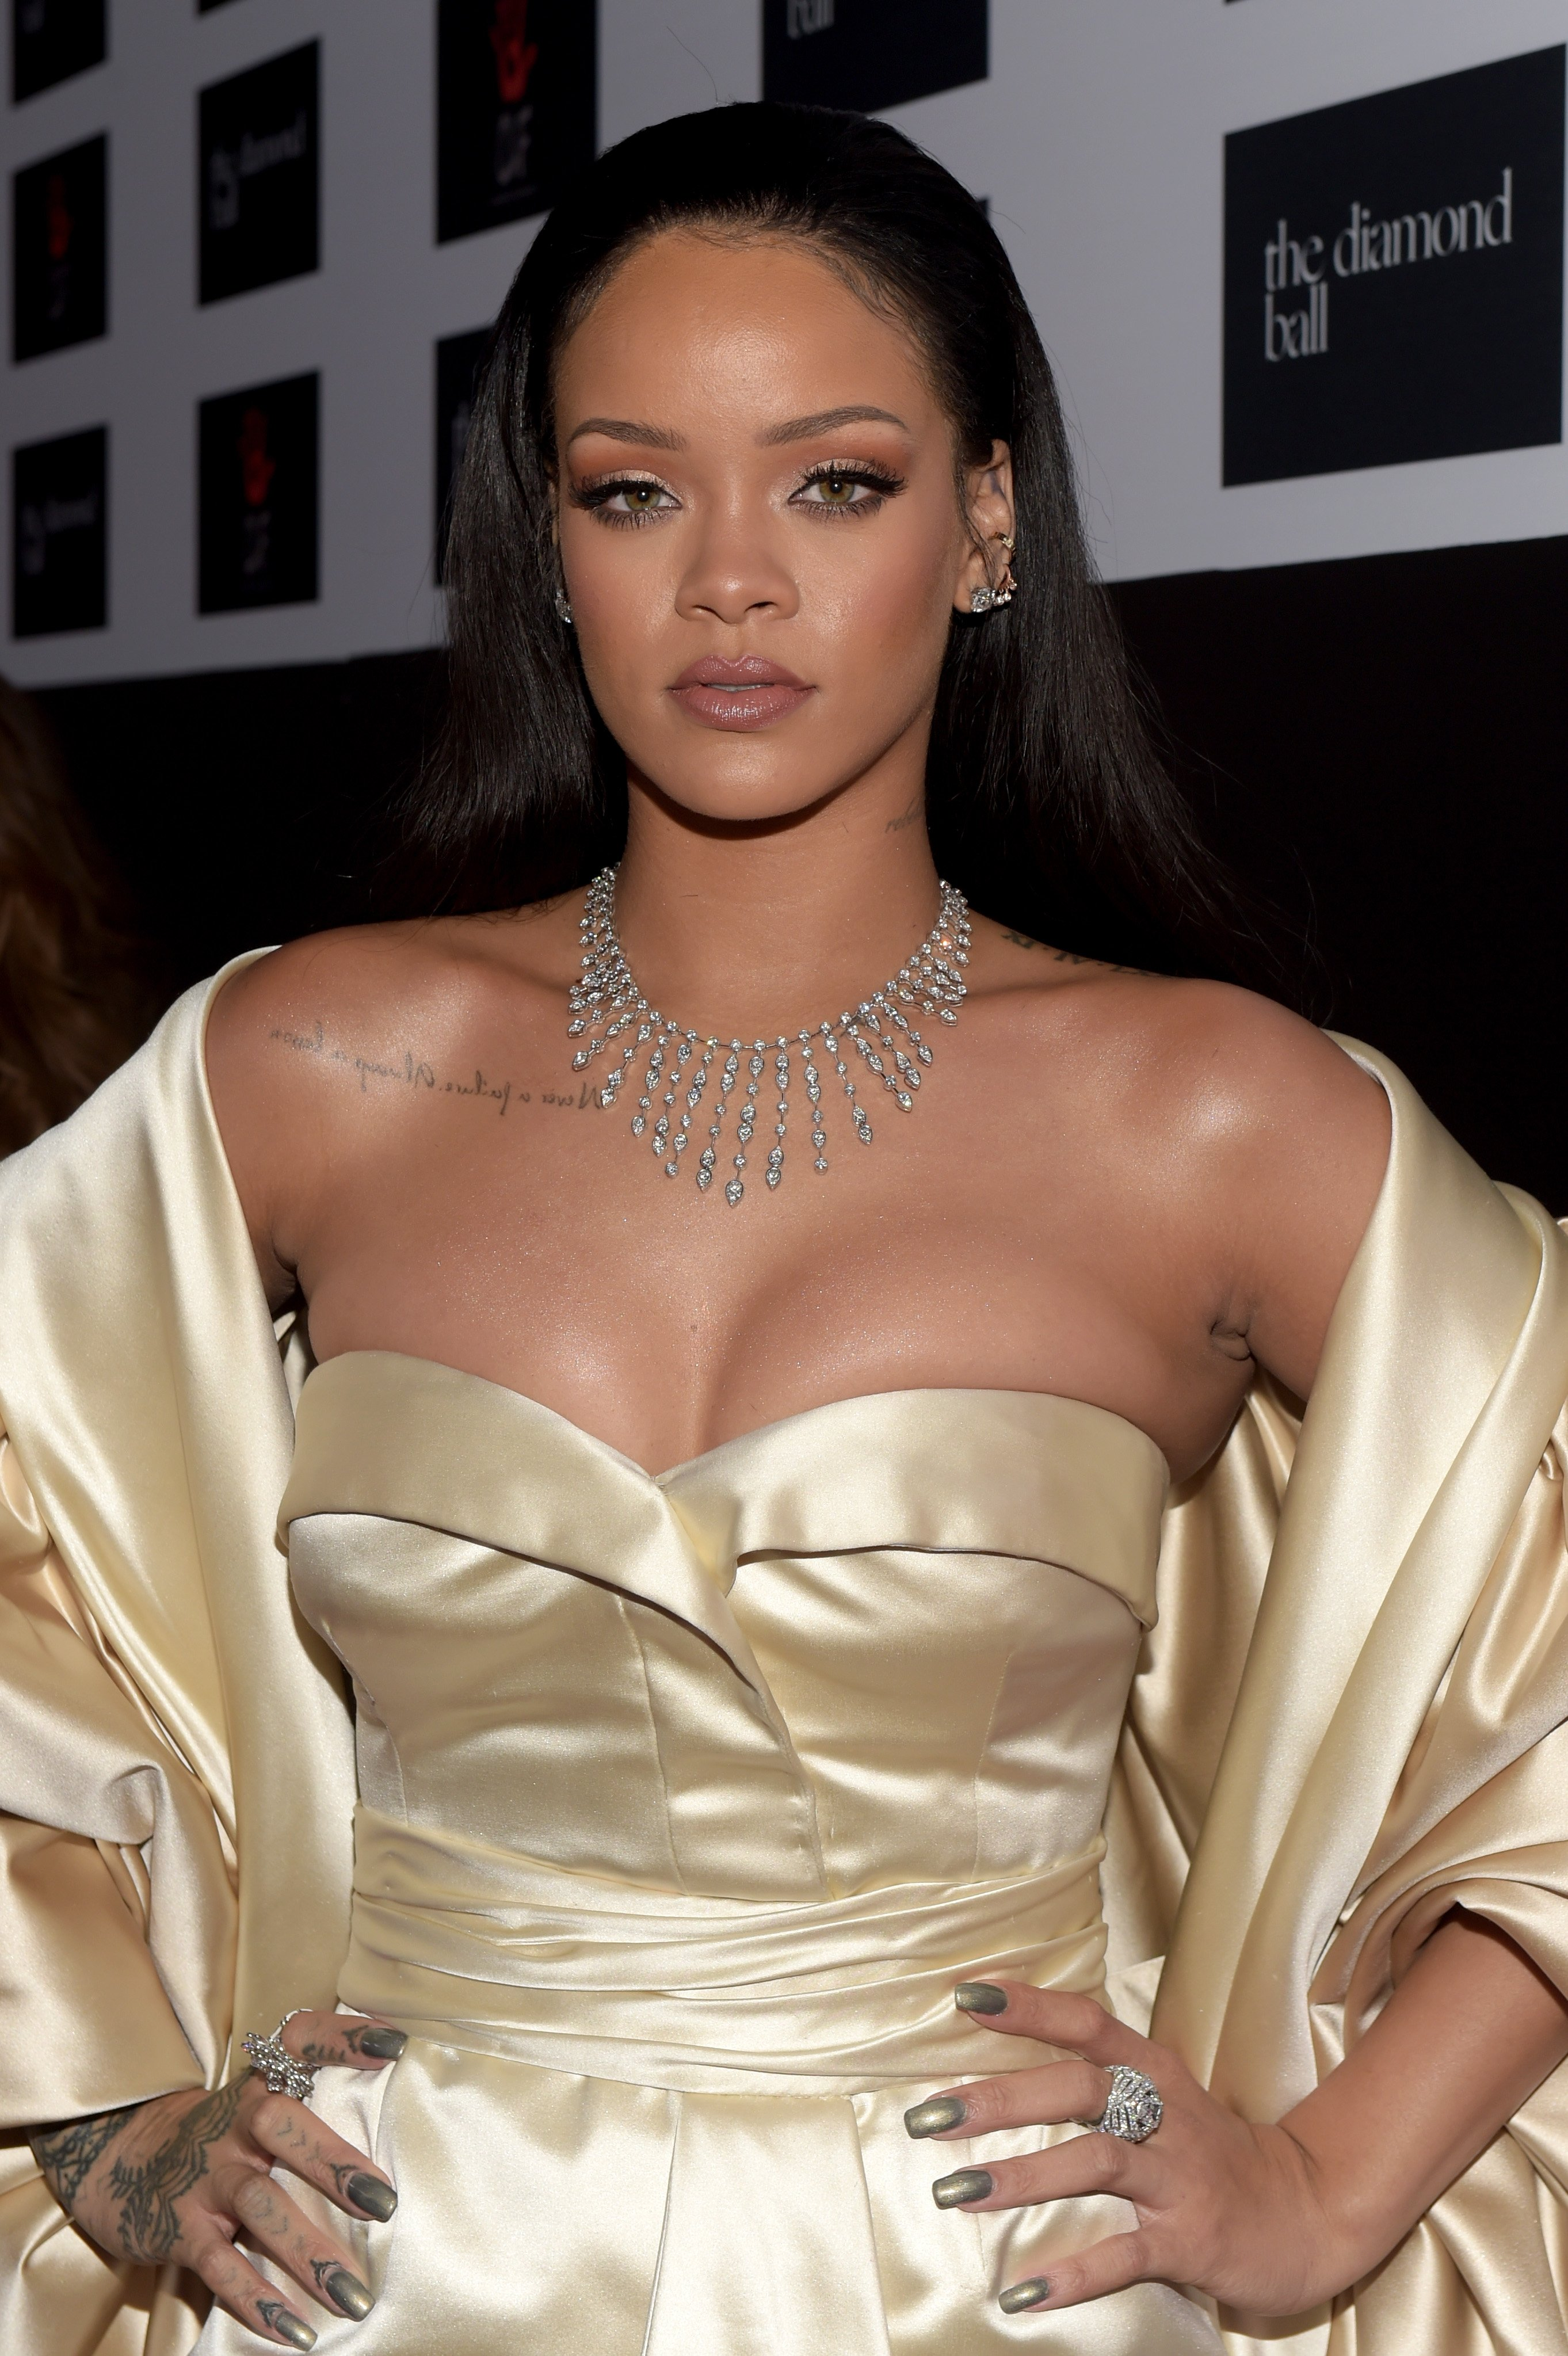 Rihanna at the 2nd Annual Diamond Ball on Dec. 10, 2015 in Santa Monica, California. |Photo: Getty Images